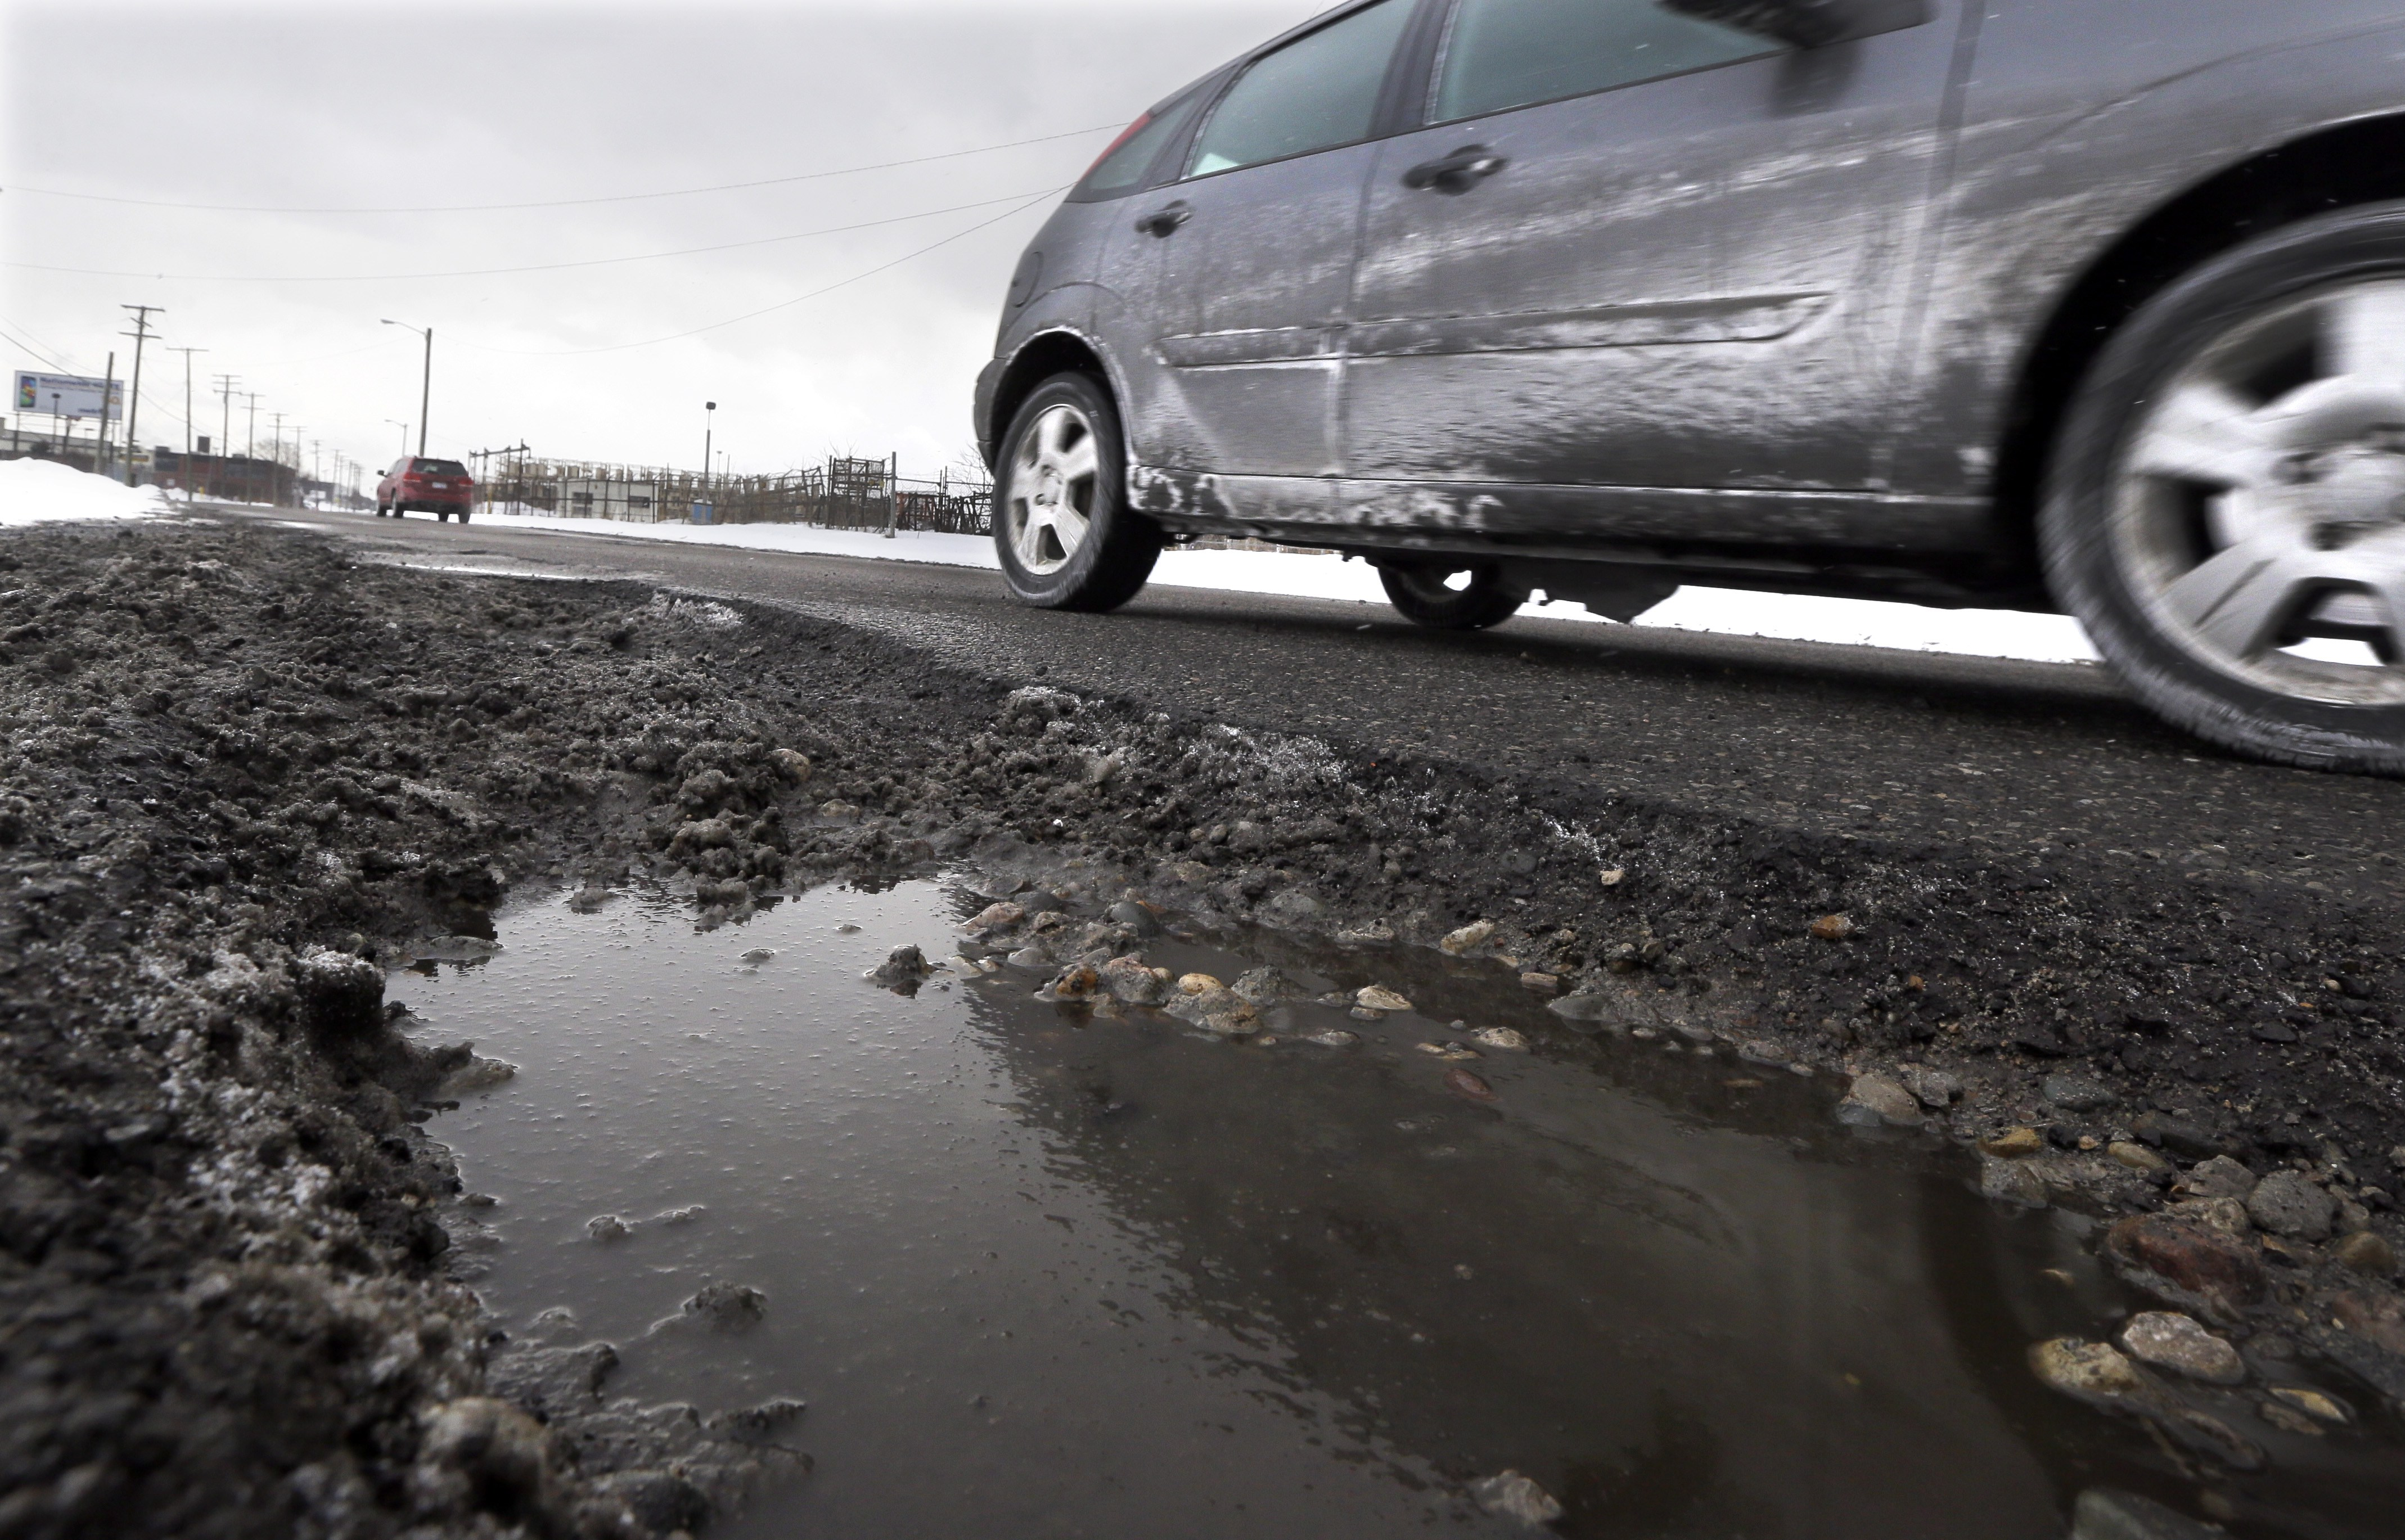 Major pothole problems plague drivers on BW Parkway